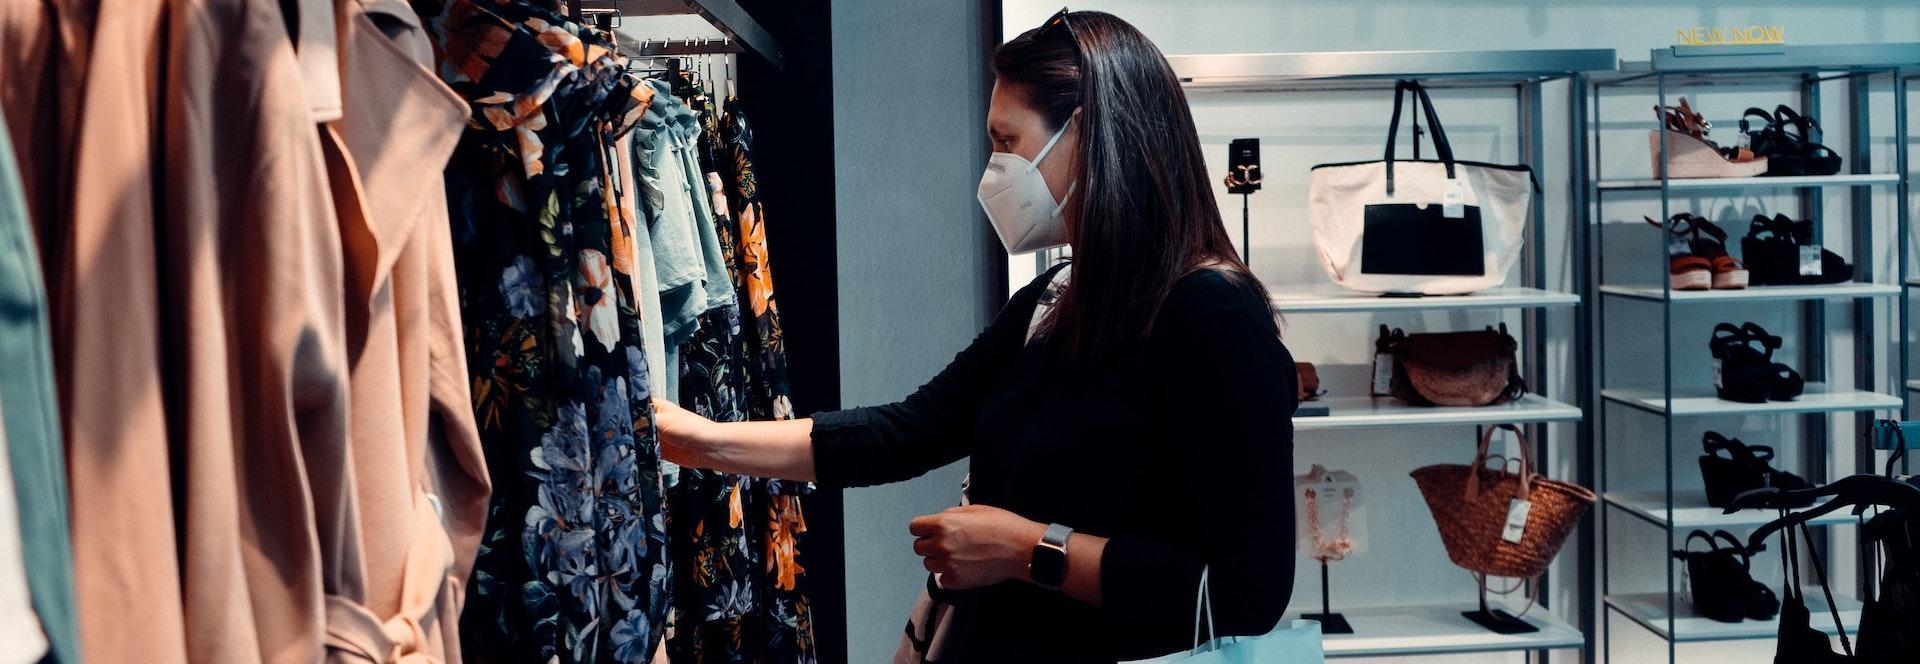 How Pandemic Shopping Is Moving Stores to E-Commerce